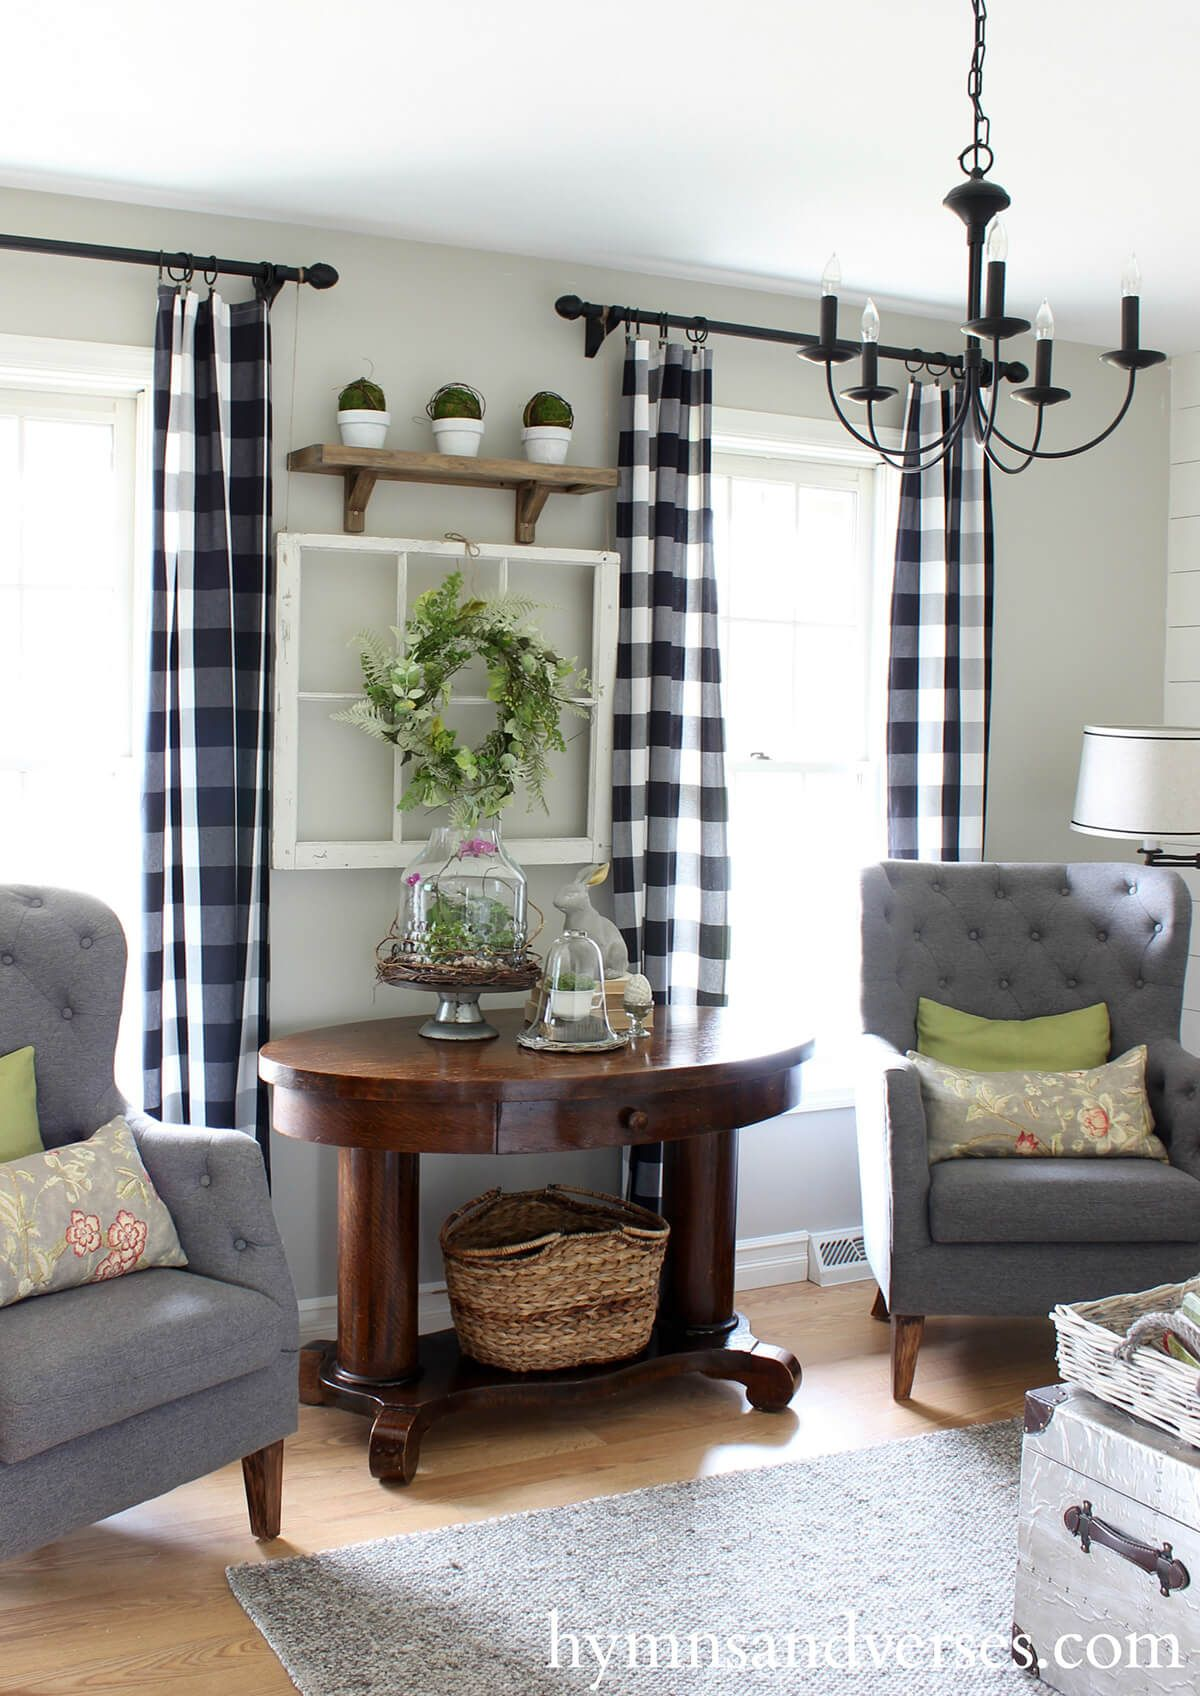 Springtime French Country Seating Area Farmhouse Living Rooms Plaid Room